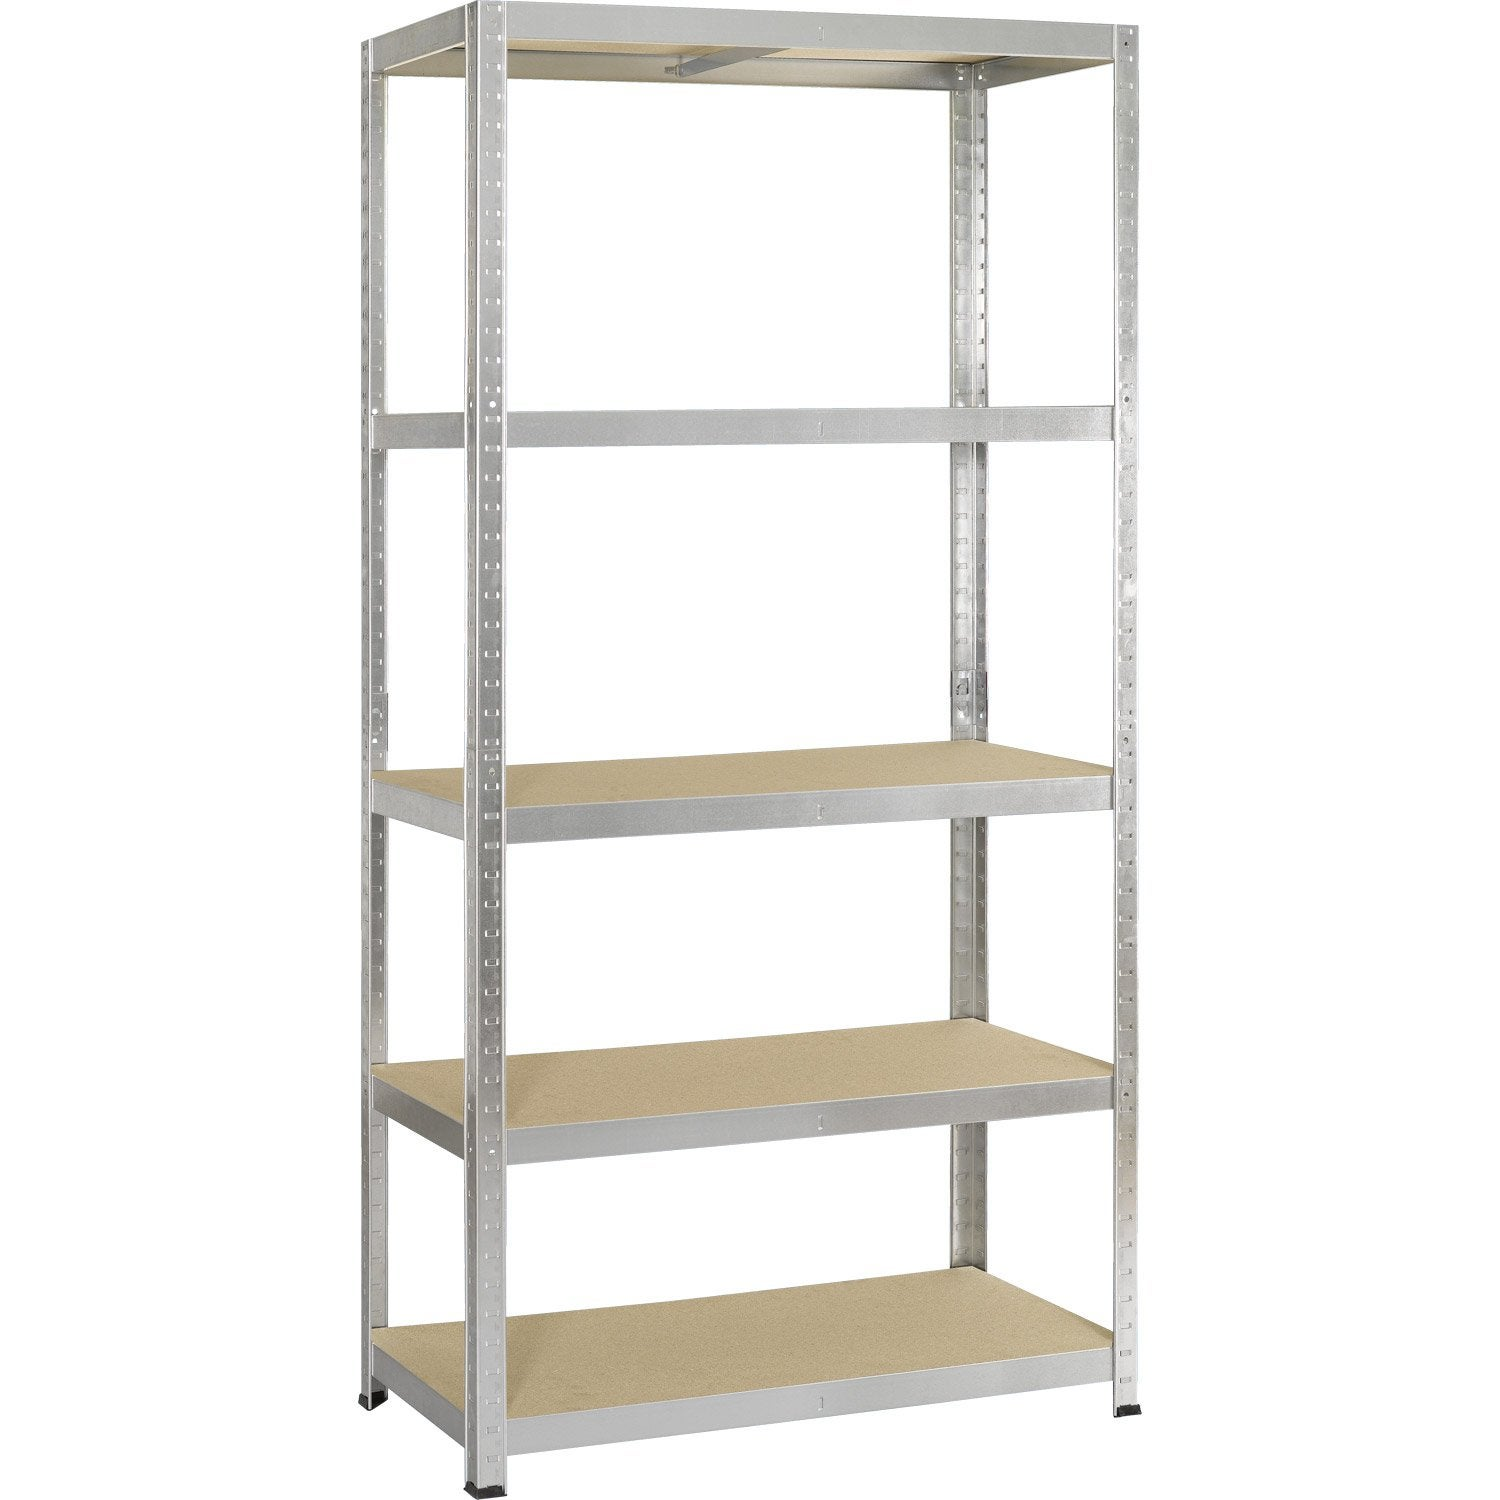 Etagere modulable leroy merlin table de lit - Console leroy merlin ...